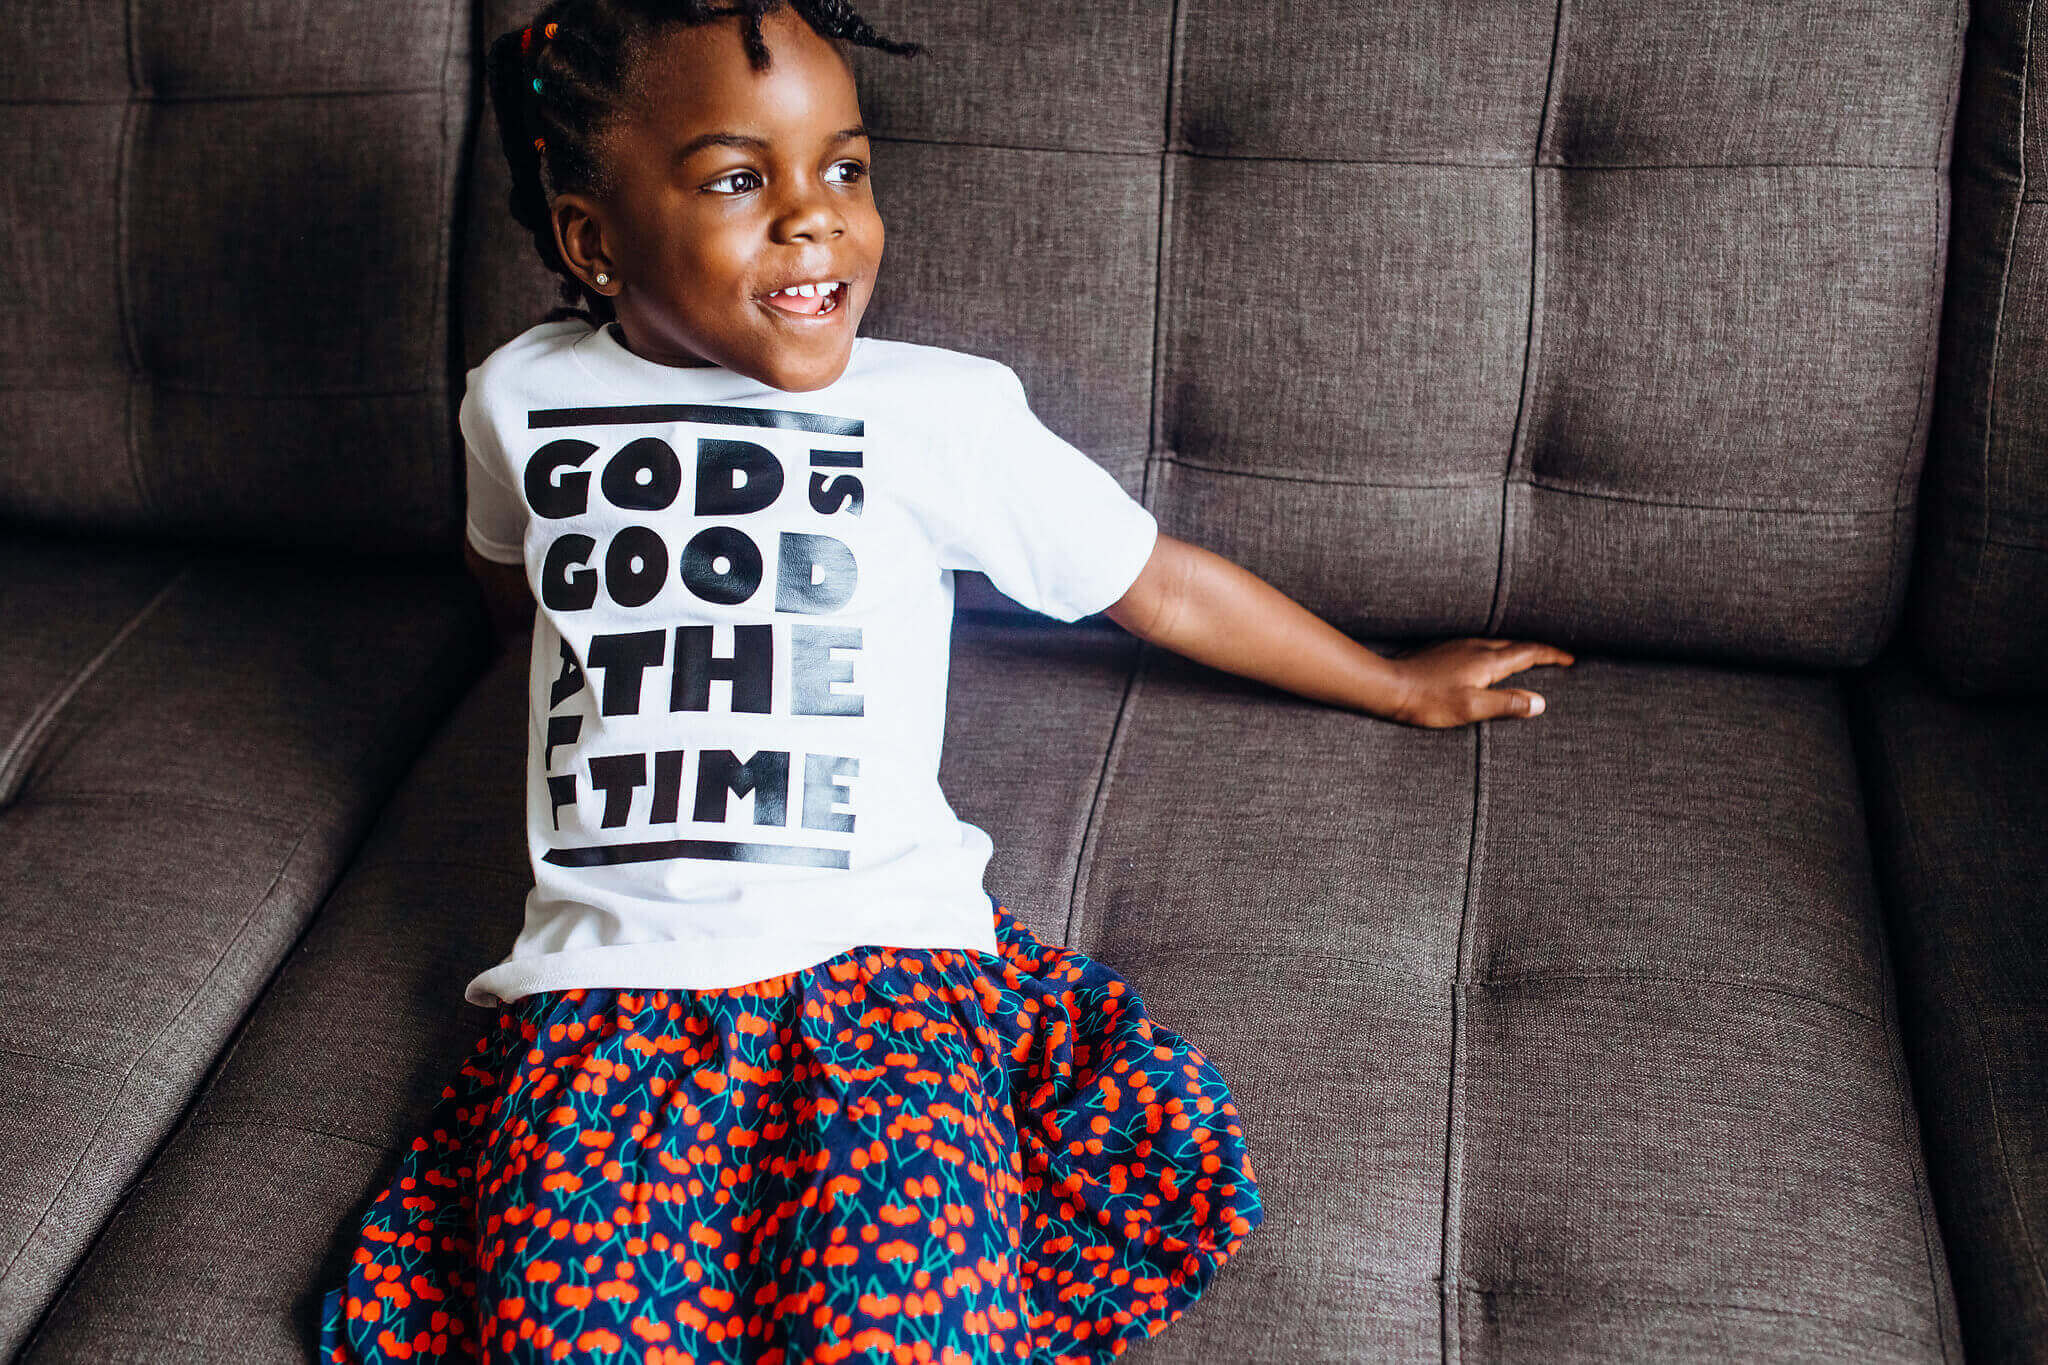 God is Good all the Time Kids T-shirt